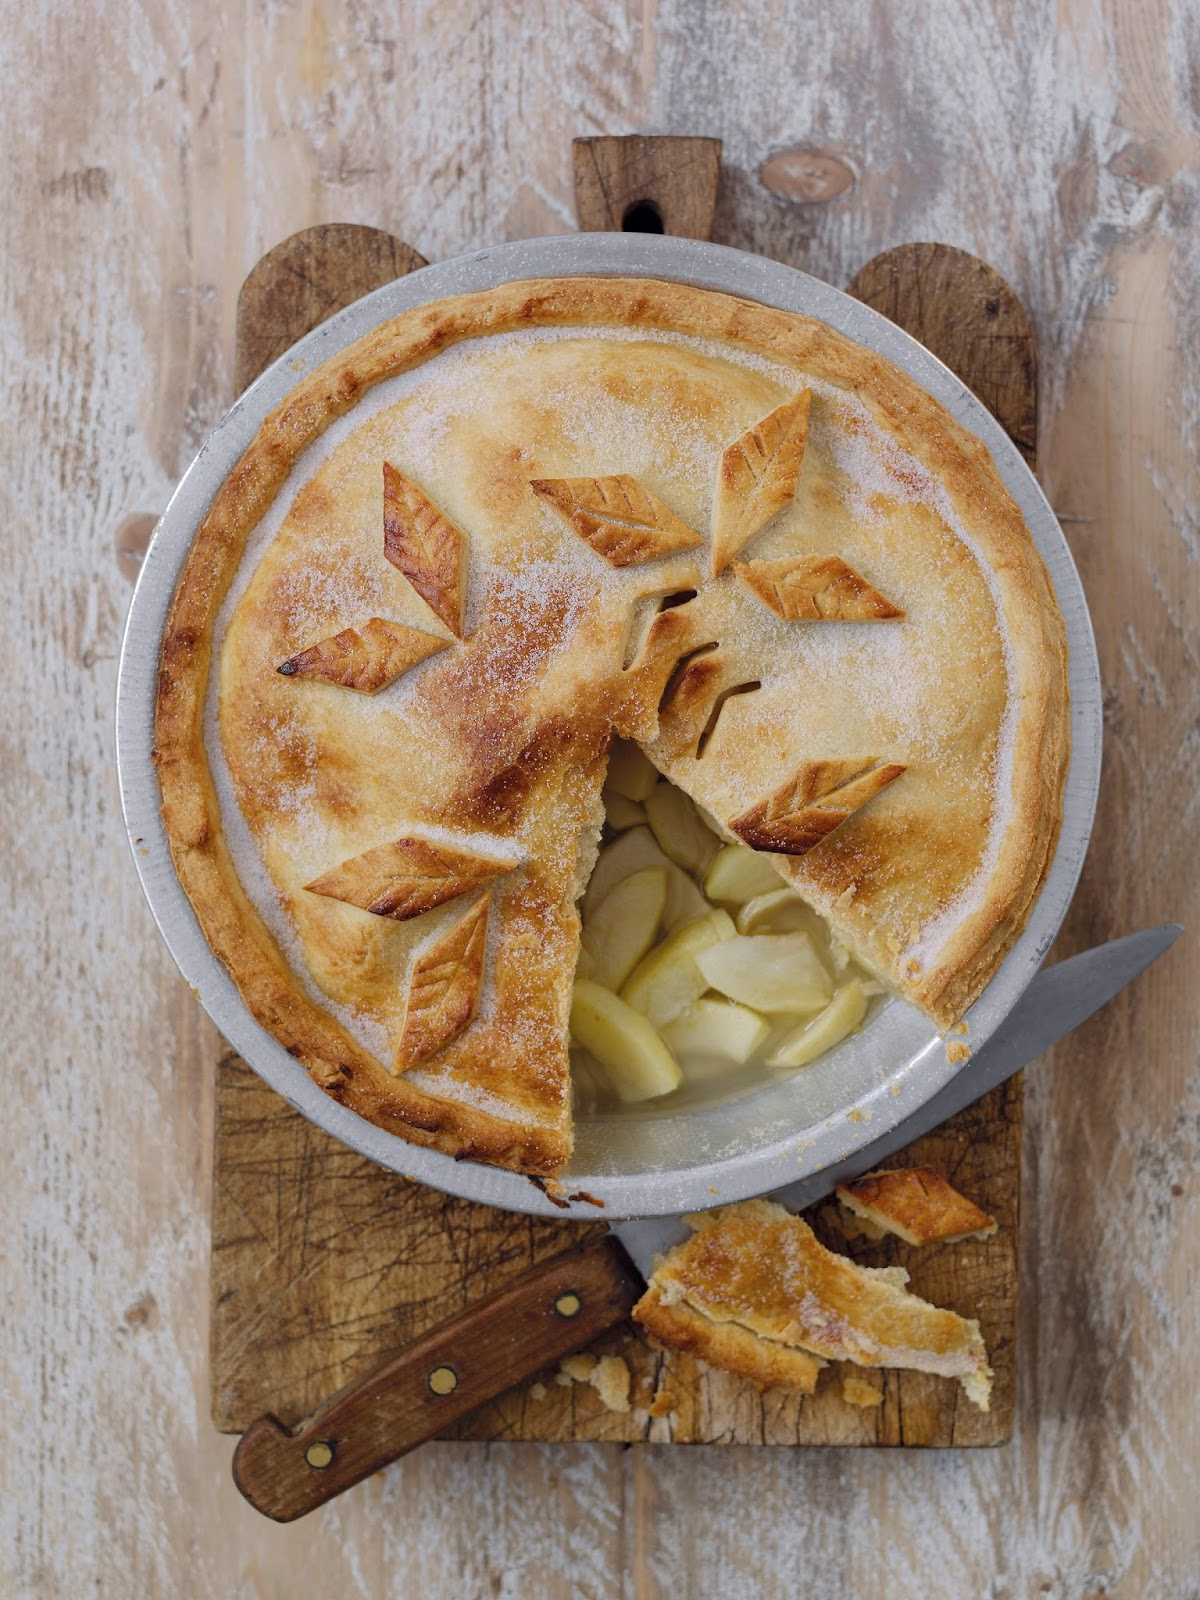 How To Make Apple of Your Eye Pie